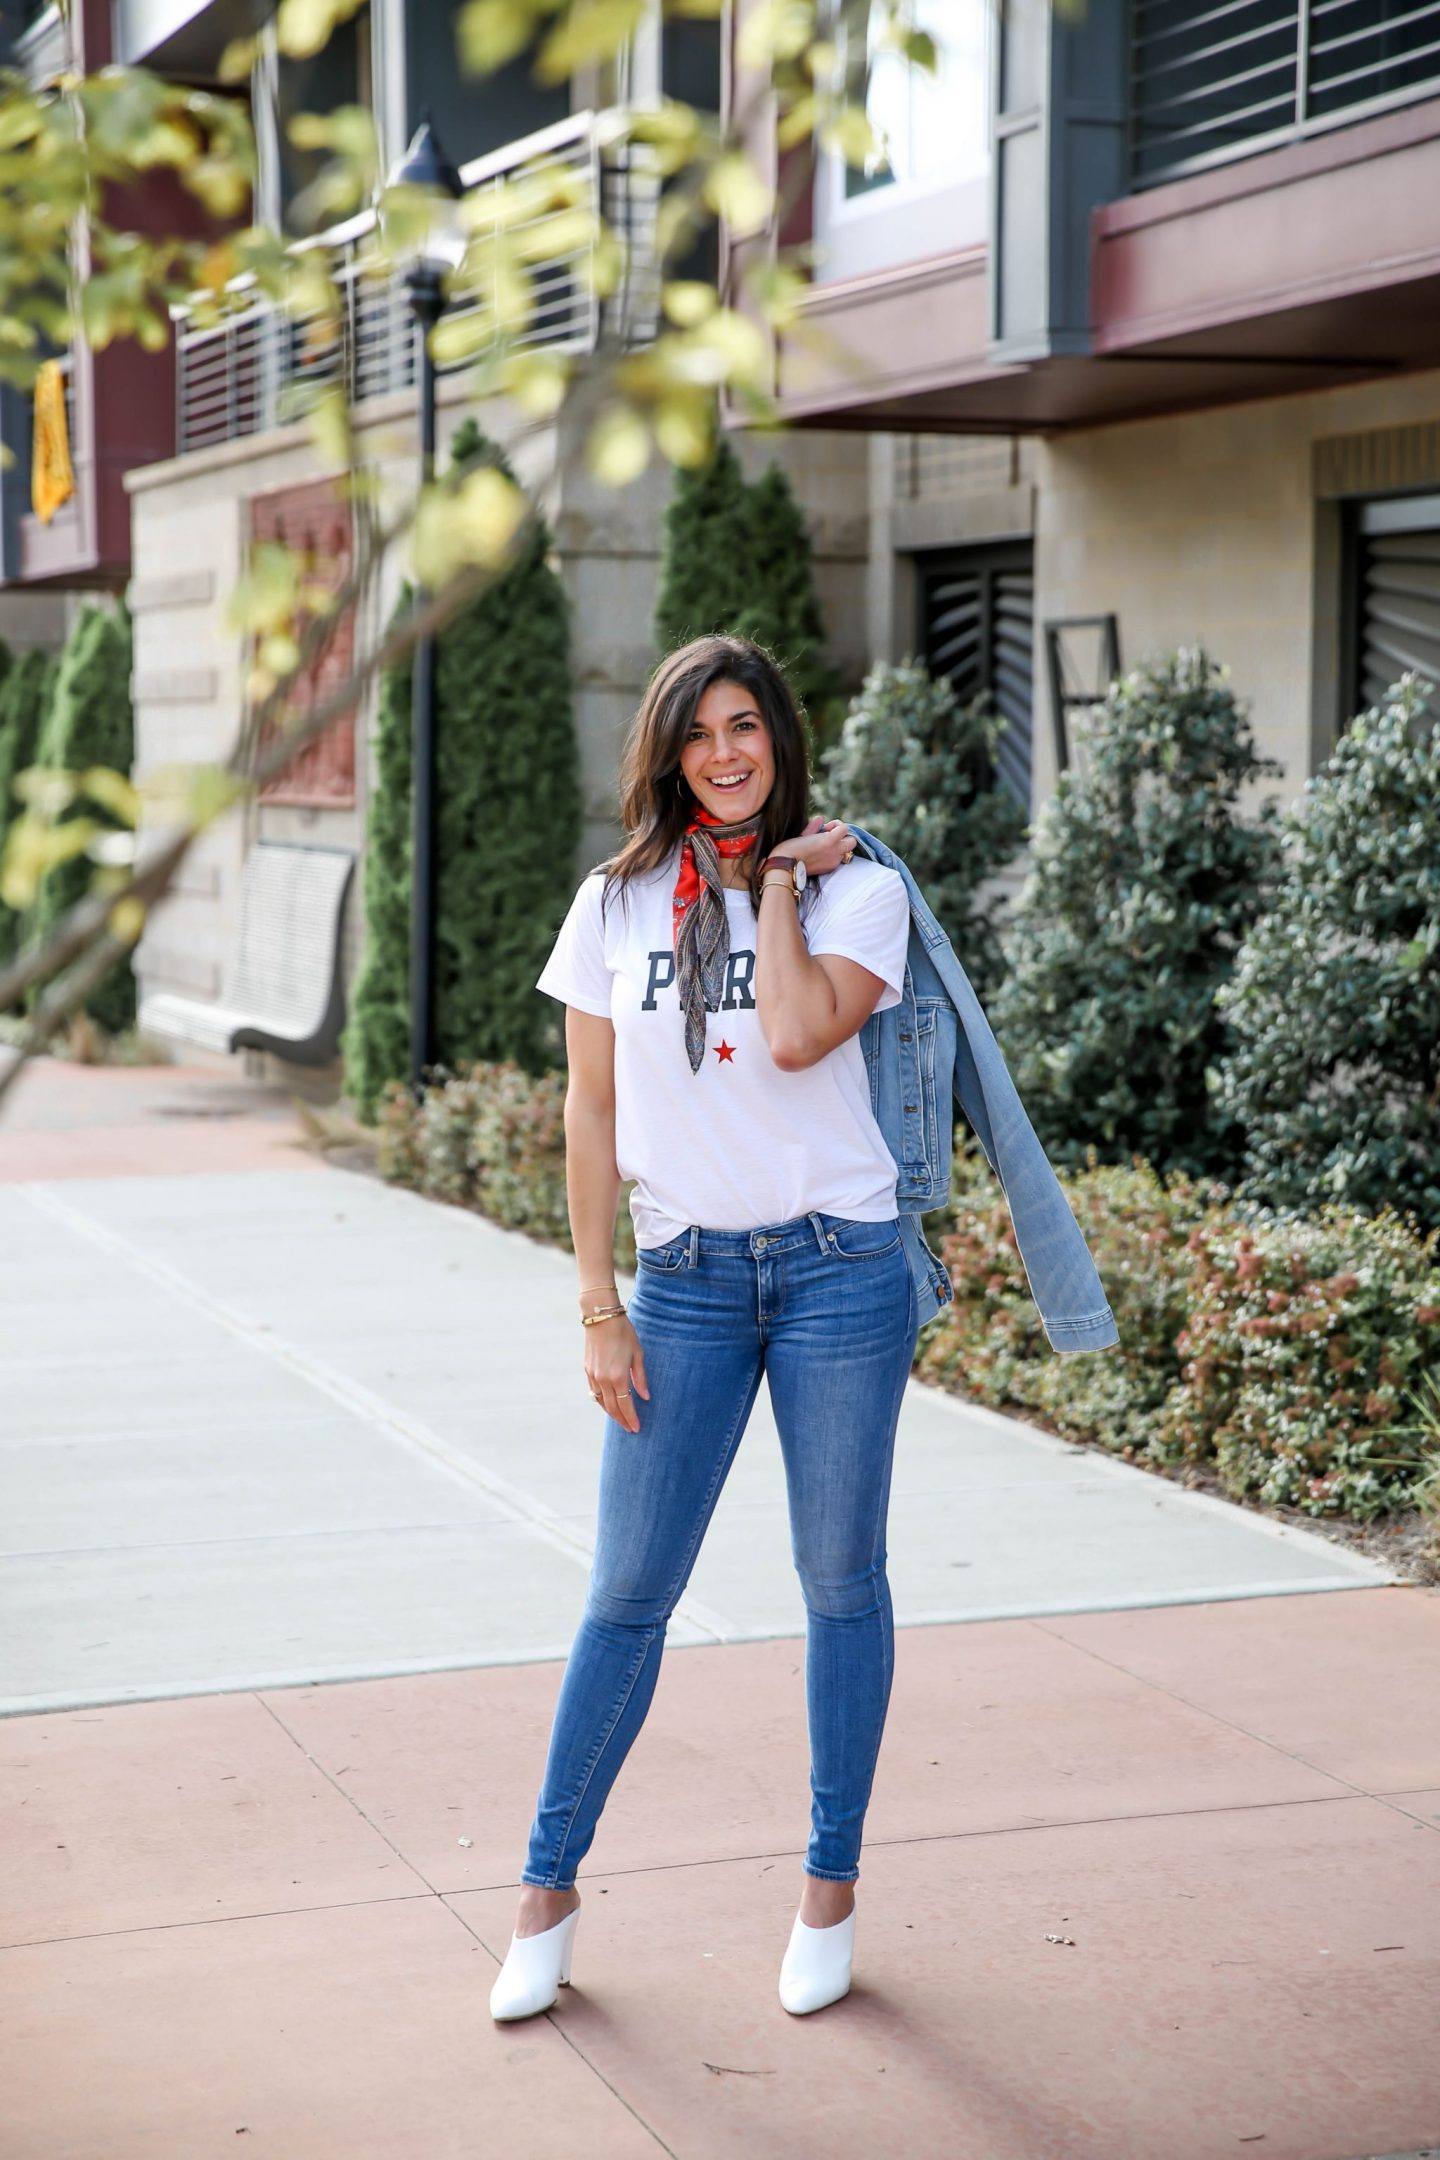 Paris Graphic Tee - Denim Jacket - Lauren Schwaiger Blog